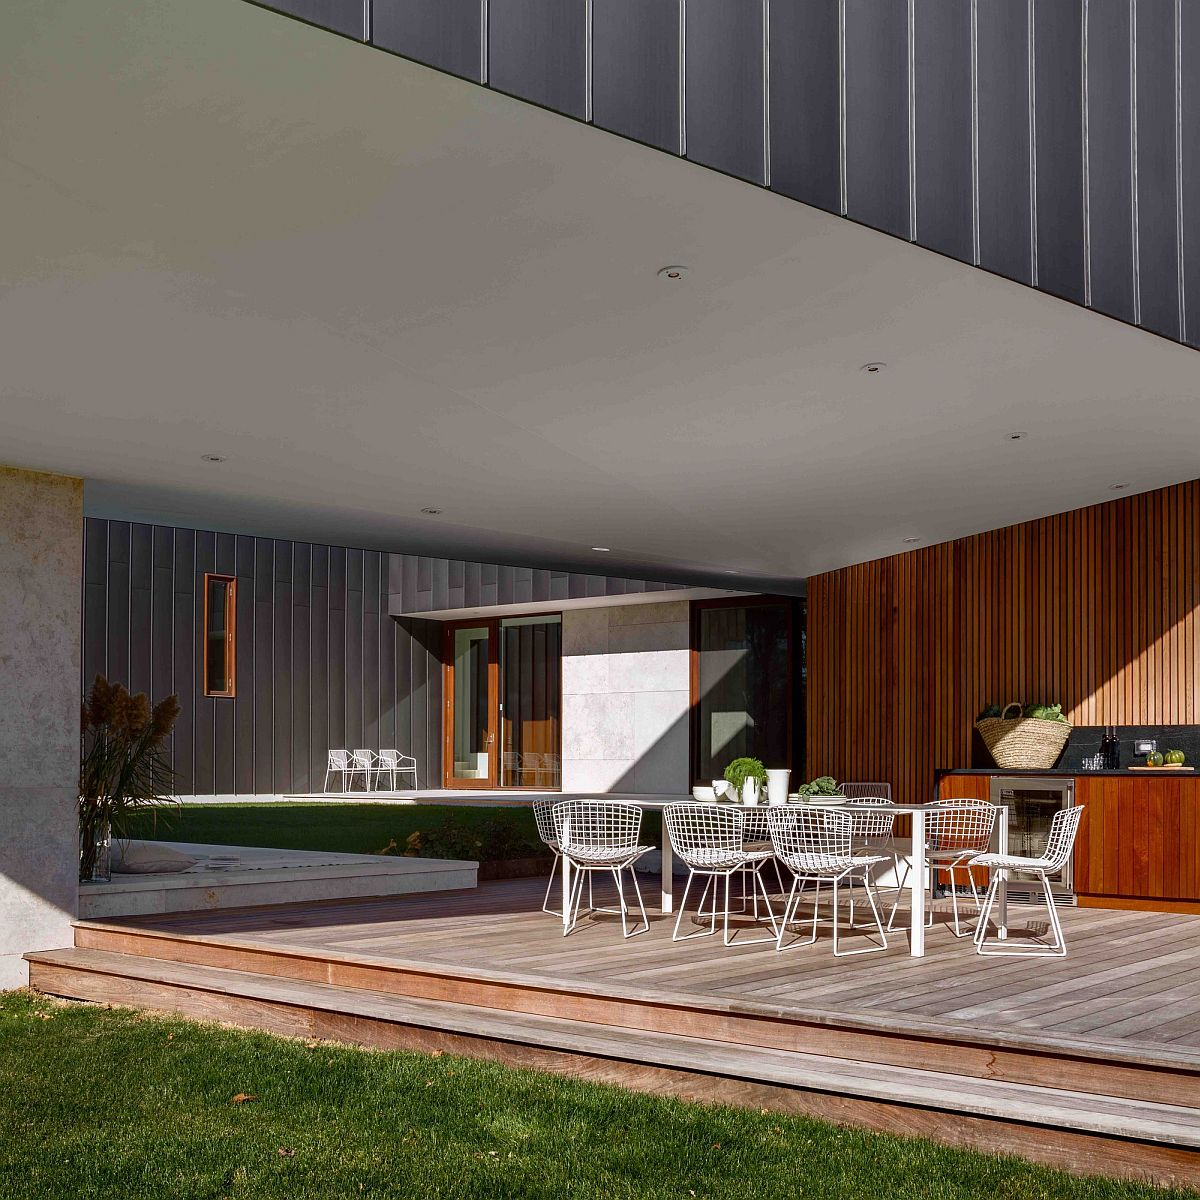 Cantilevered structure of the home offers shade for the outdoor dining and barbecue zone